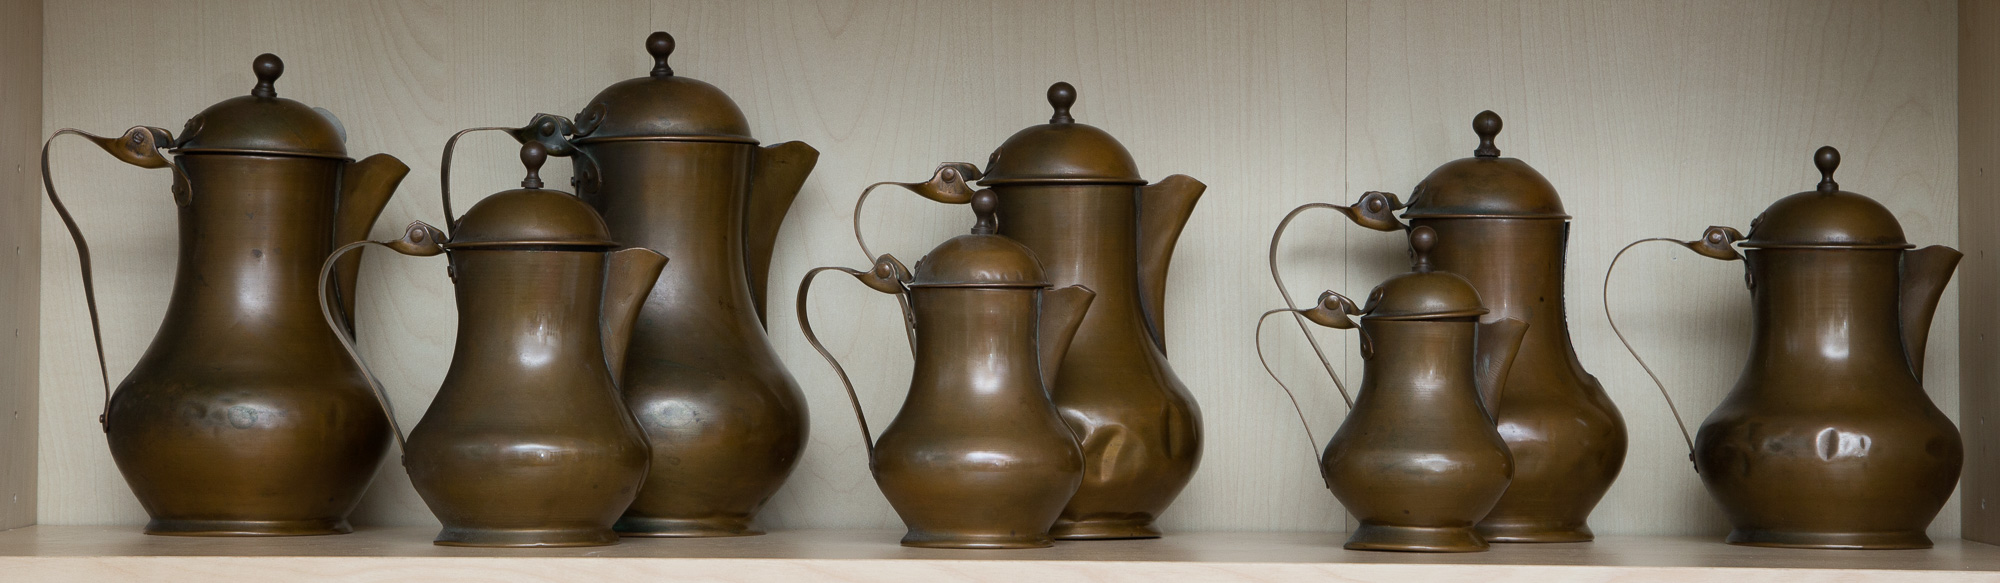 Lot image - Set of Eight Copper Covered Jugs